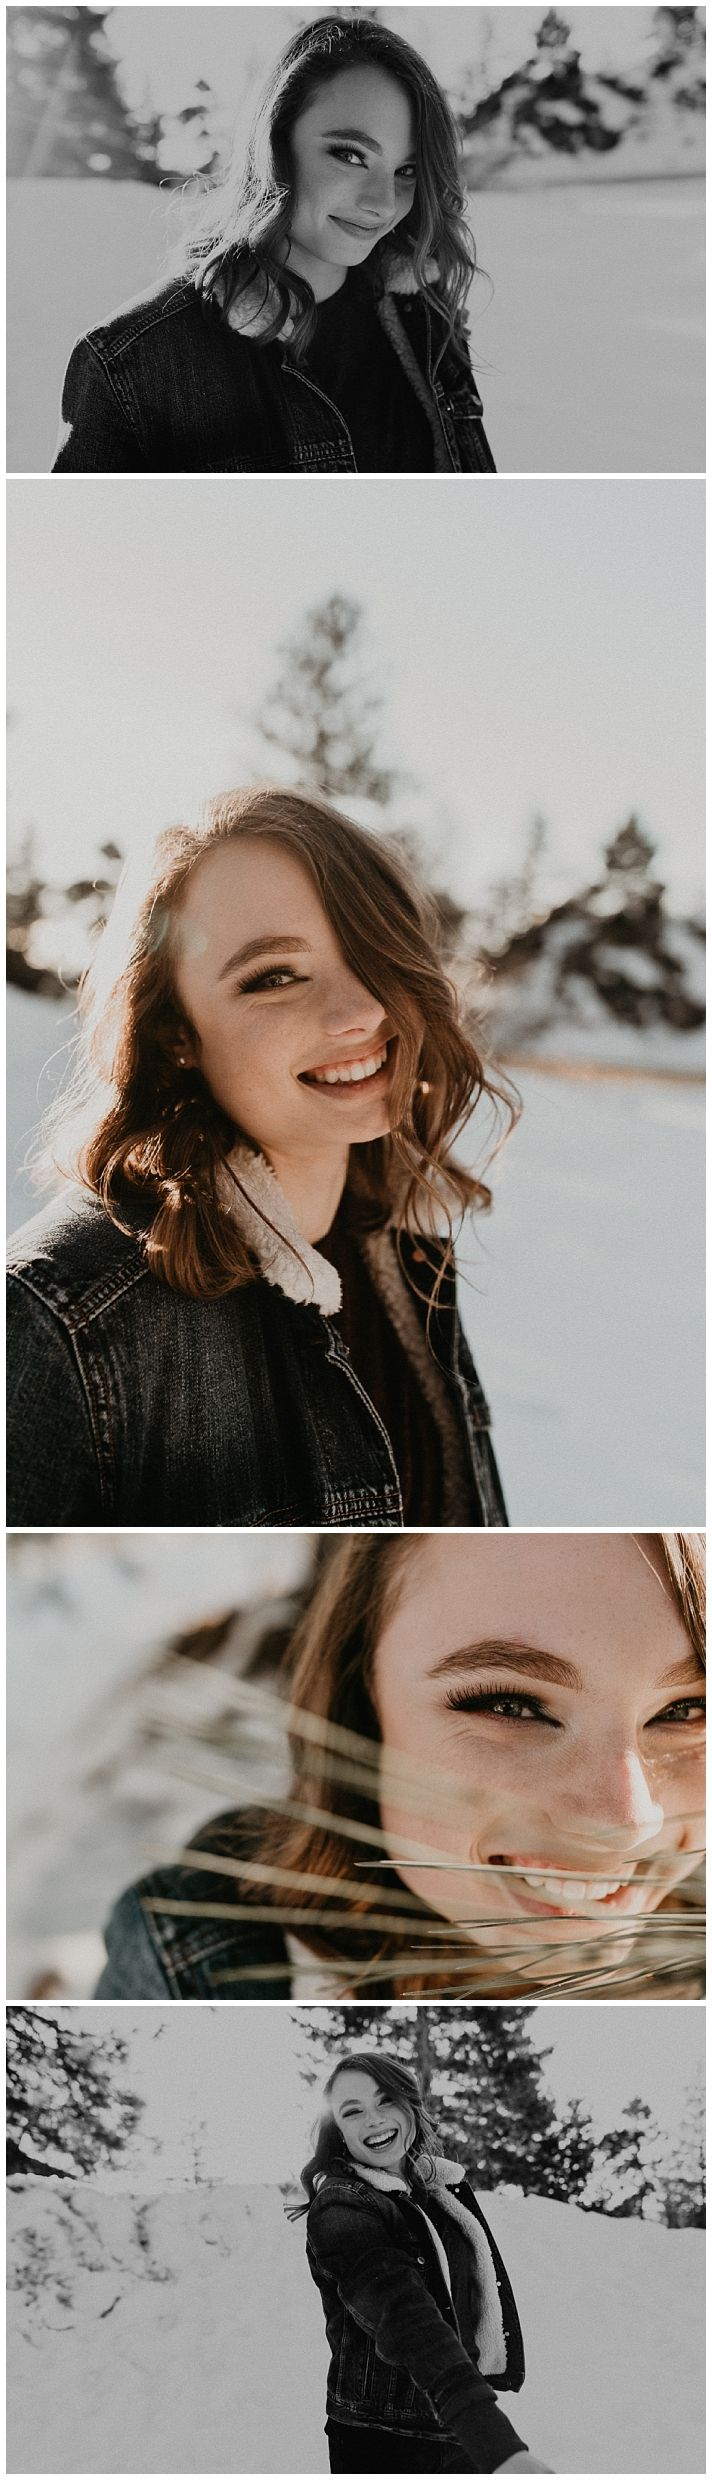 Boise Senior Photographer Makayla Madden Photography Senior Pictures Bogus Basin Mountain Ski Resort Worship Faith Adventure Mountains Portraits Winter Senior Session Idaho Snow Senior Pics Senior Girl Outfit Ideas Inspiration